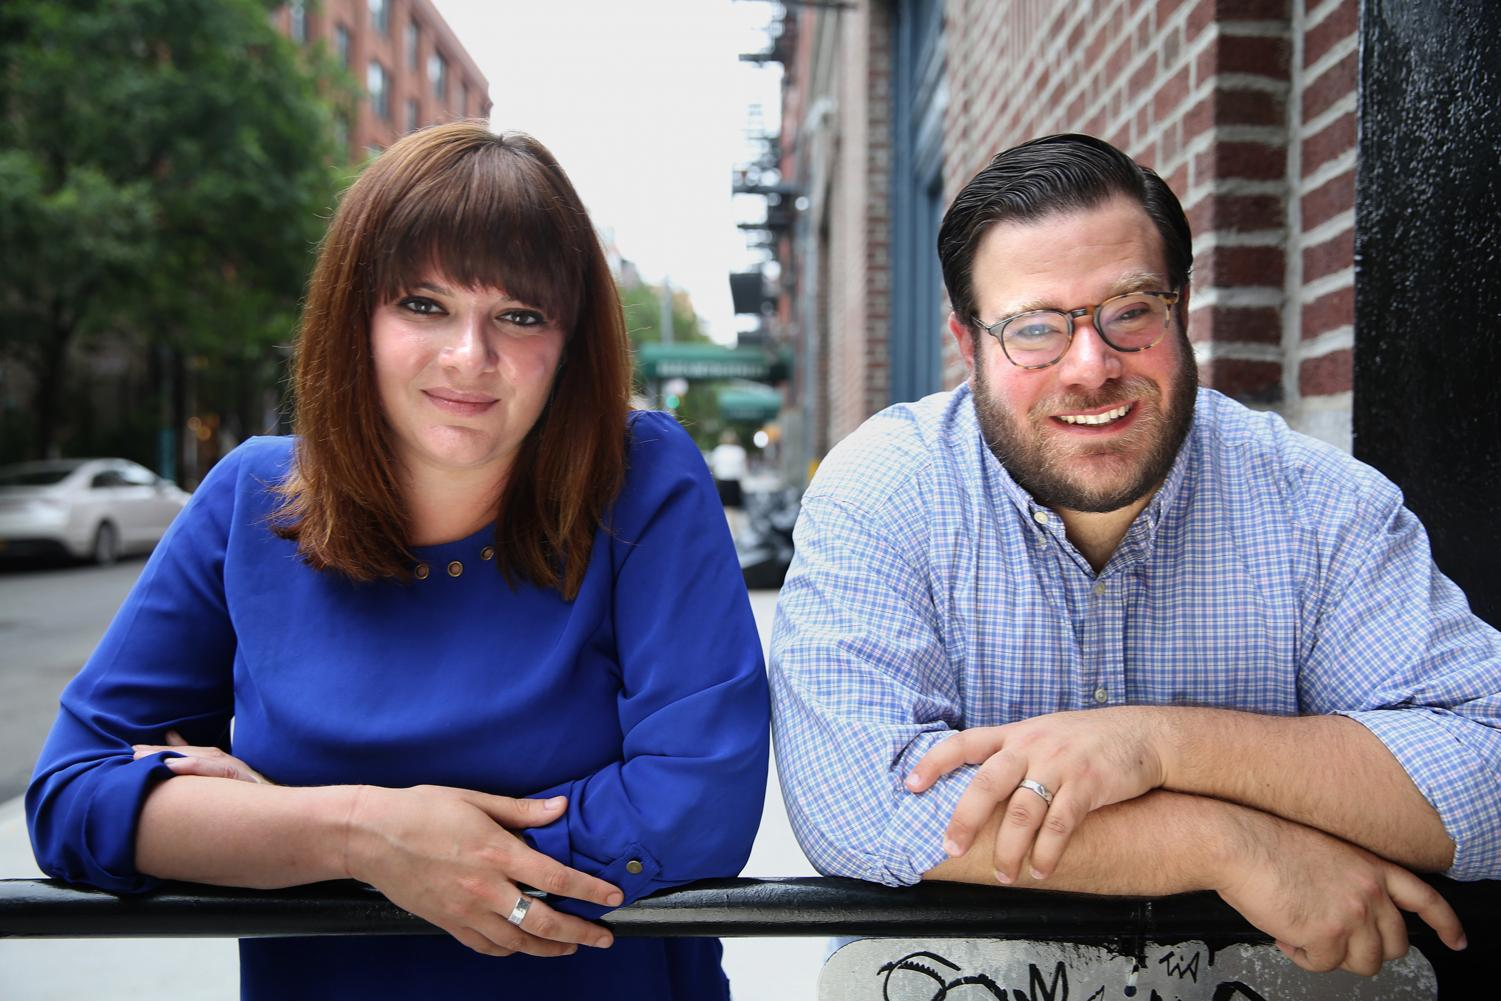 Amanda Litman (left) and Ross Morales Rocketto (right) co-founded the Democratic recruitment group Run for Something. Litman, along with New York Times political correspondent Jonathan Martin, will speak at a Thursday CTSS event.